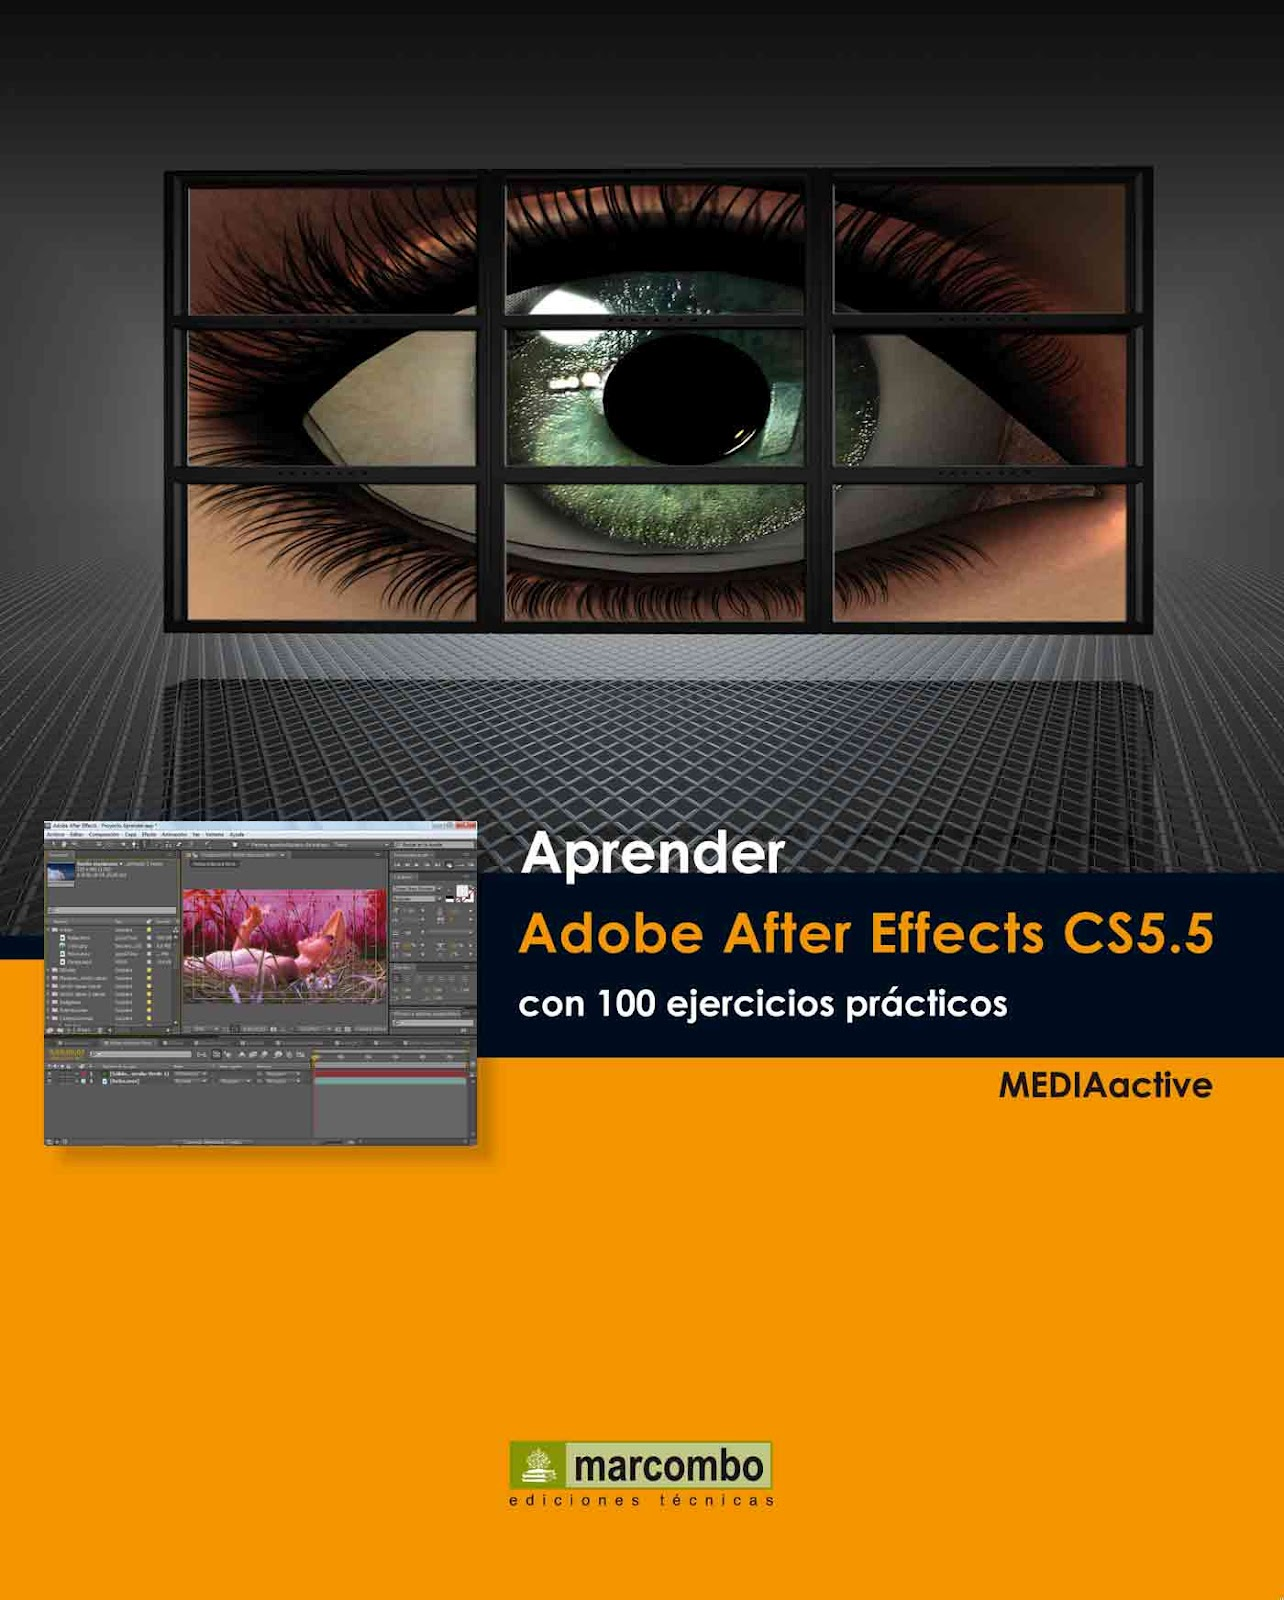 Adobe After Effects CS6 Tutorial in Telugu - Complete ...